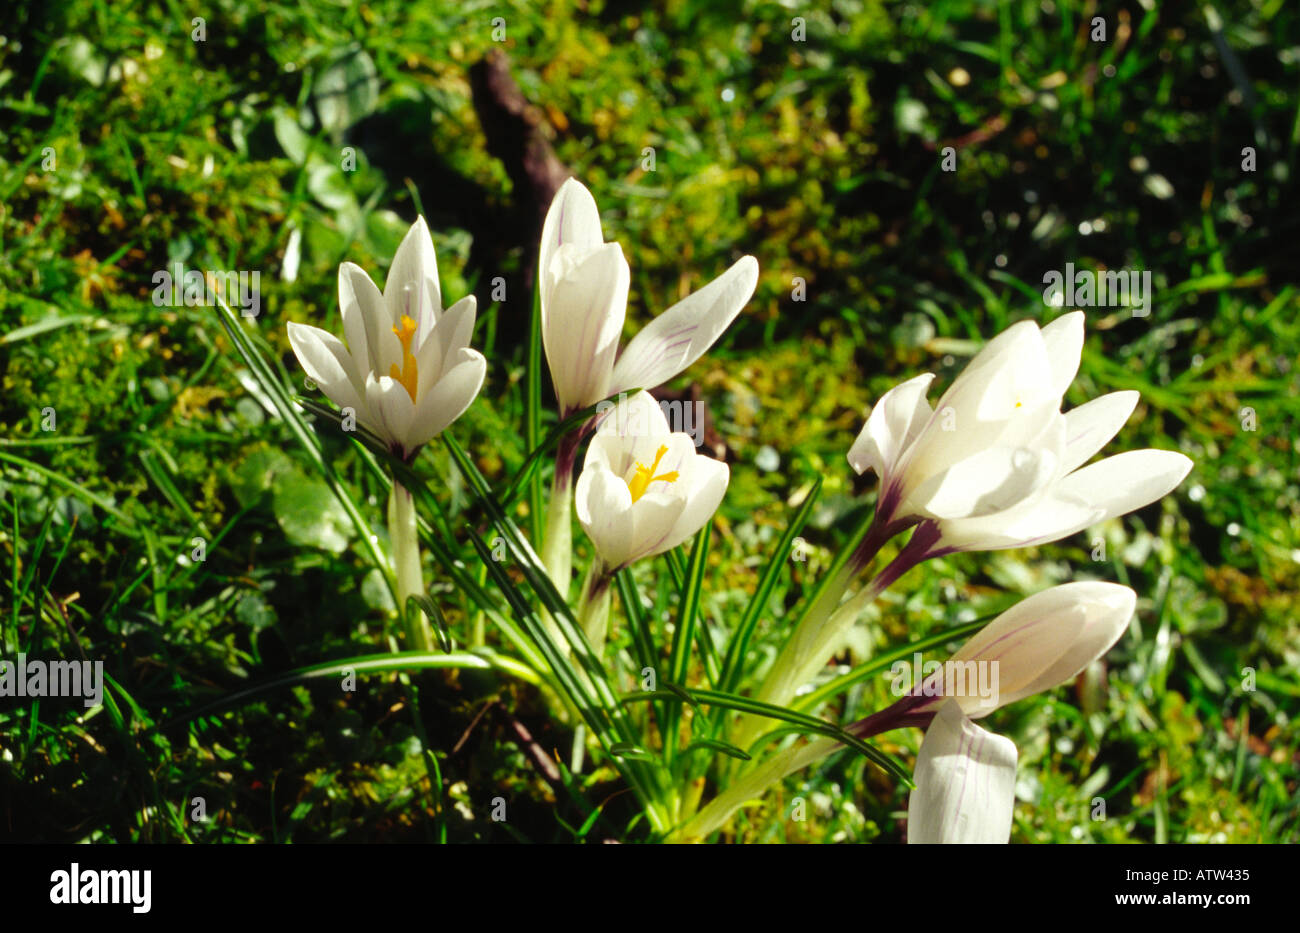 Wild white crocus flowers stock photo 3052596 alamy wild white crocus flowers mightylinksfo